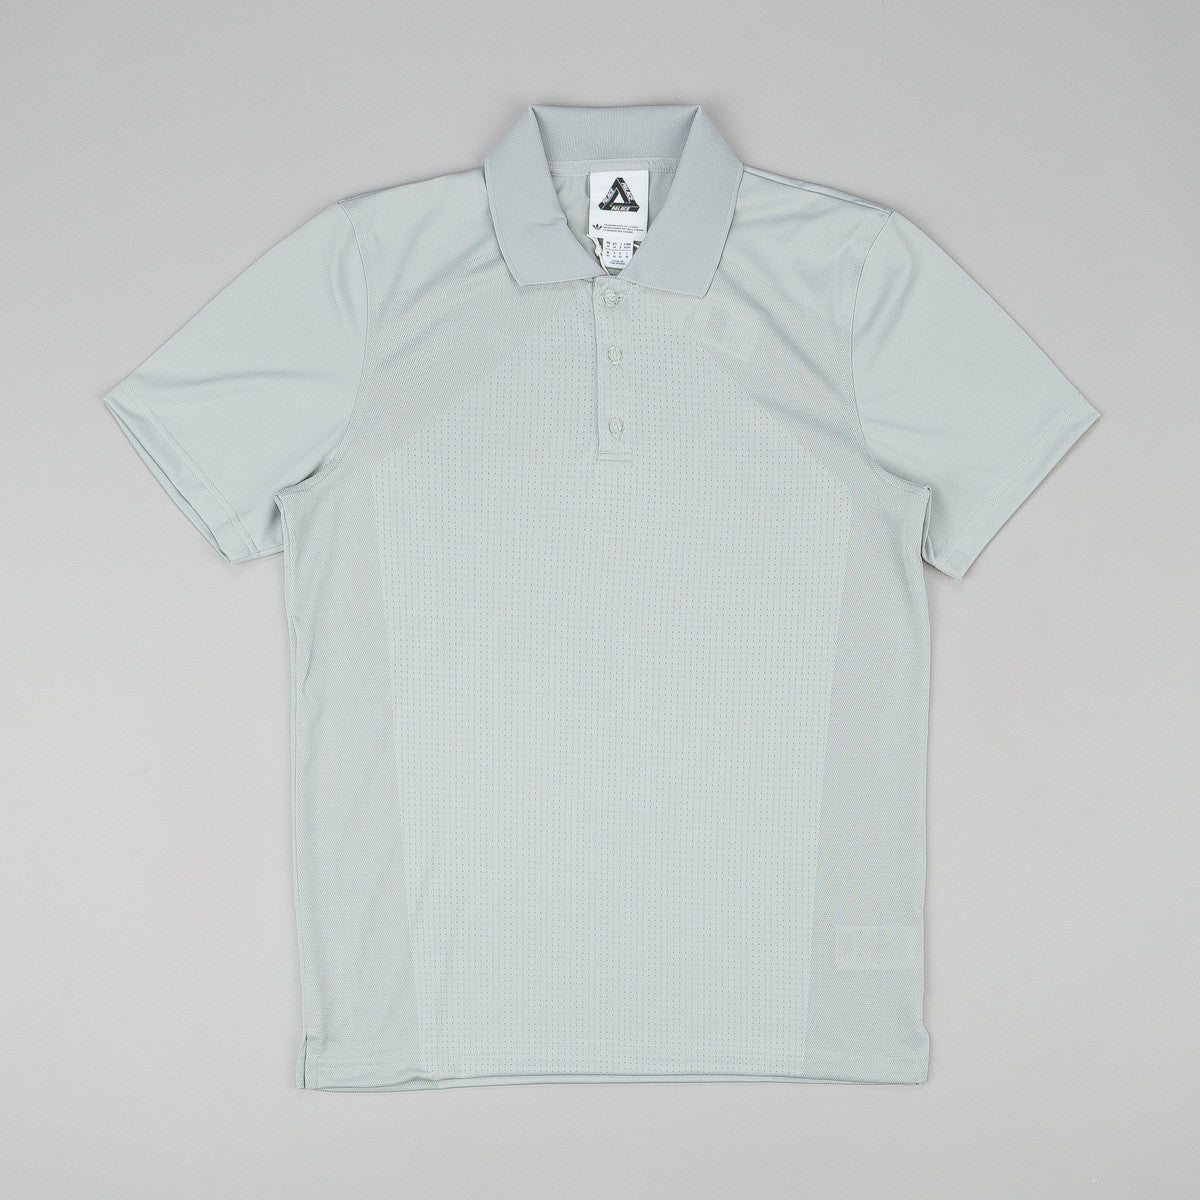 Adidas x Palace Knitted Polo Shirt - Grey